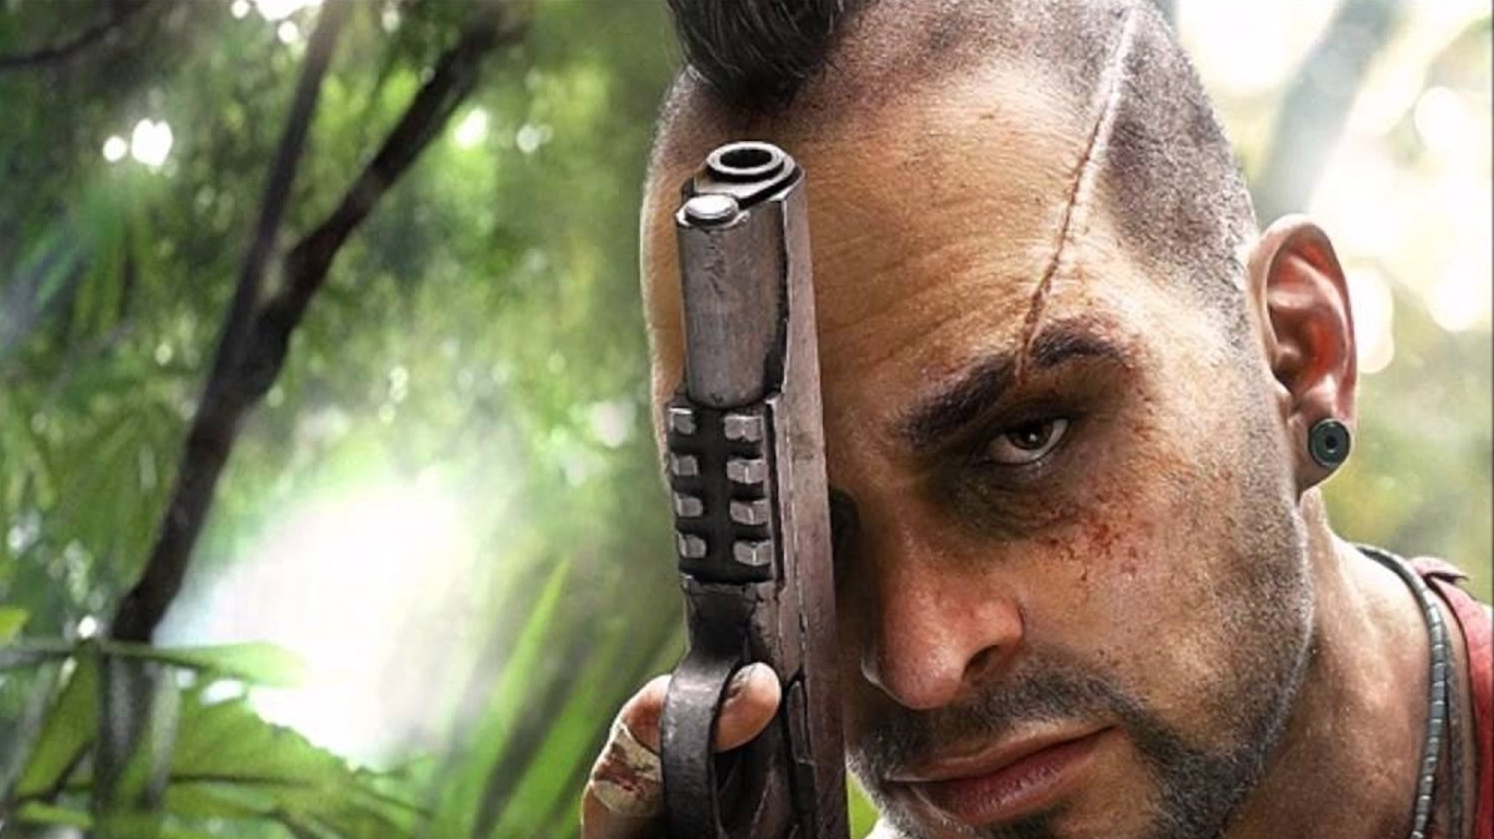 Far cry 3 download for pc crack | Far Cry 5 Download  2019-09-13